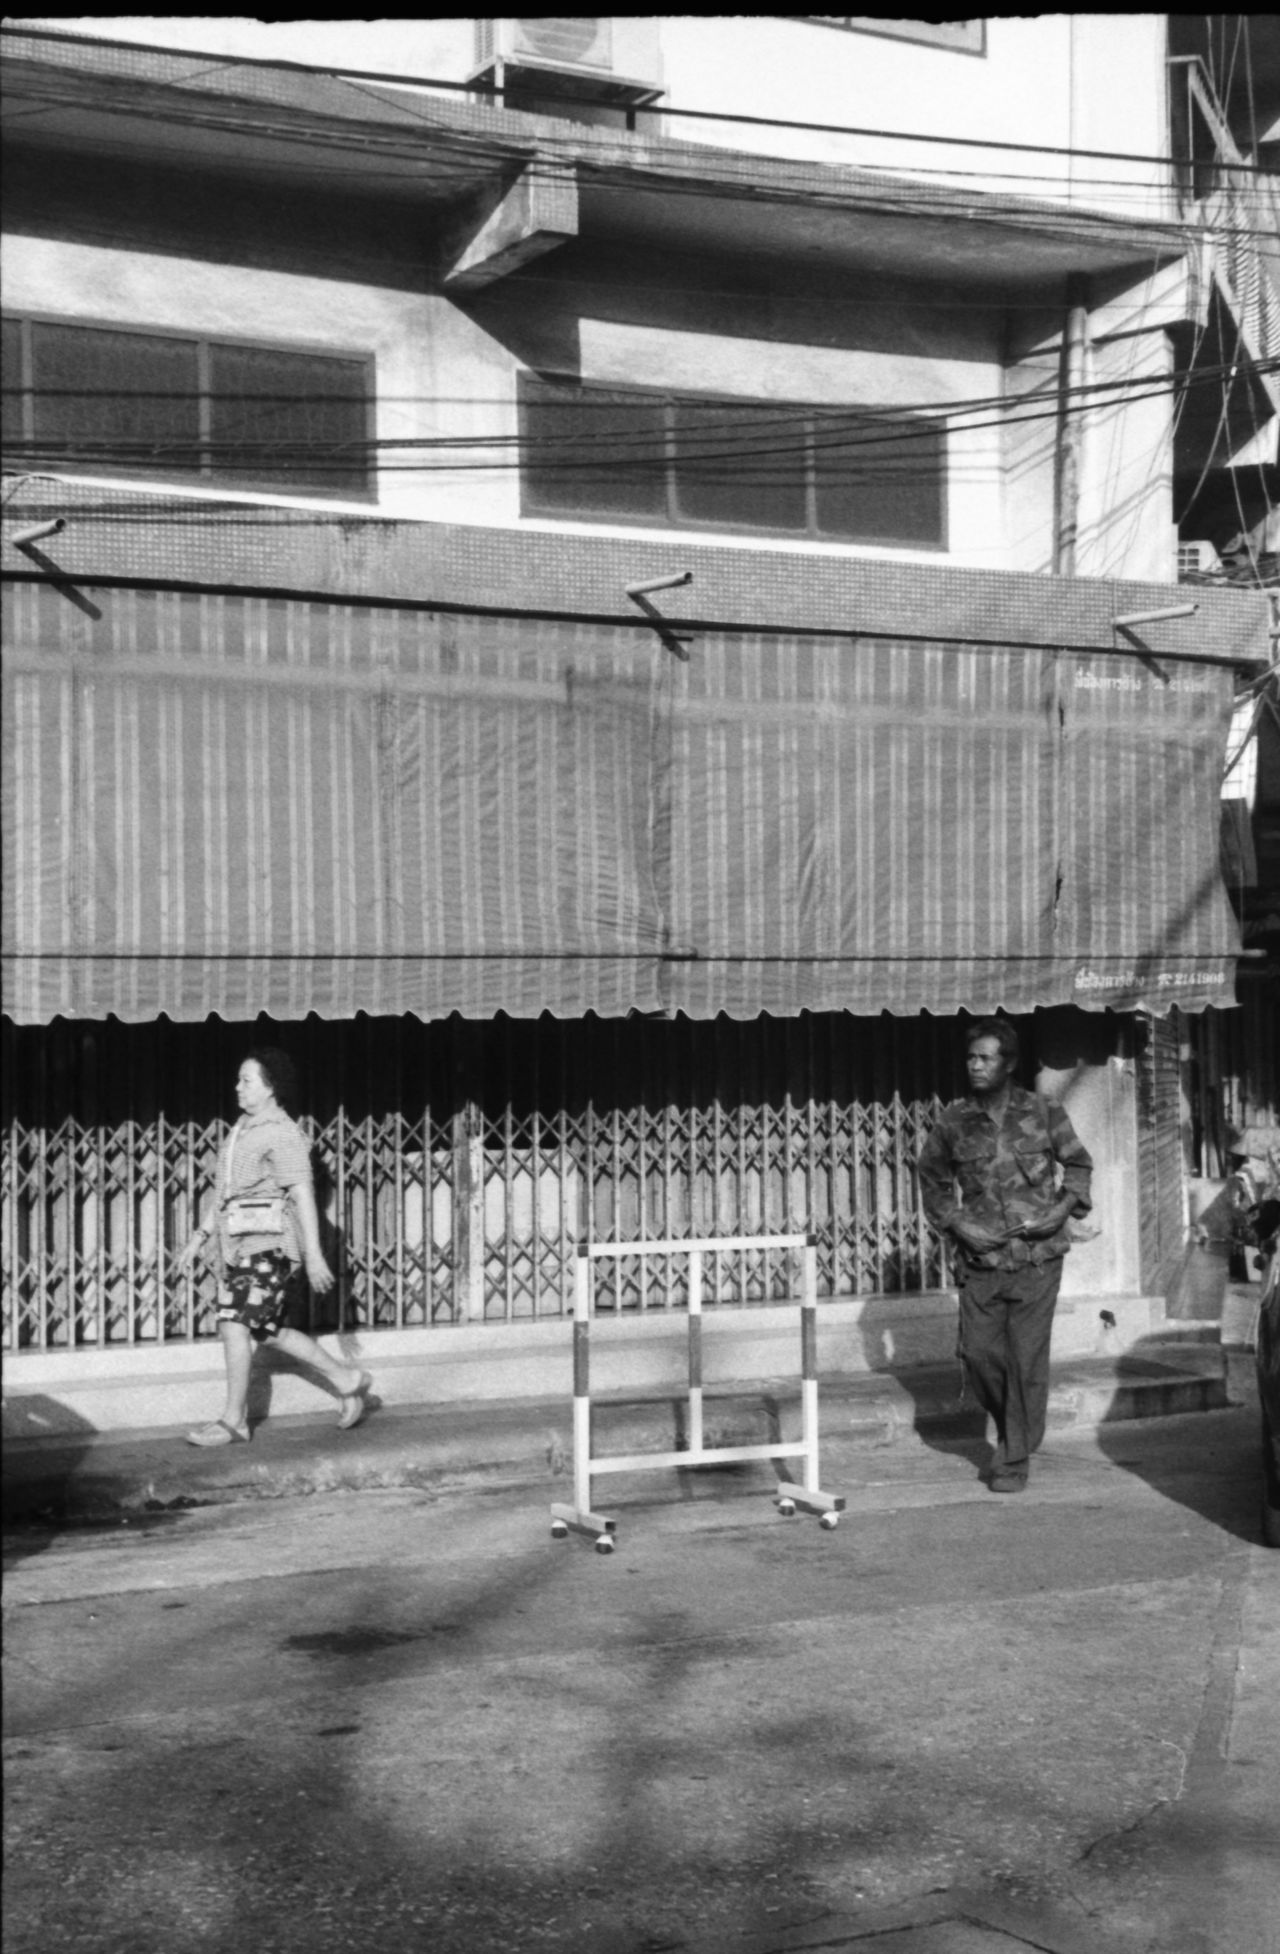 shades of bangkok 35mm Film B&w Street Photography Bangkok Black And White Building Facade Candid City Life Copy Space Film Photography Filmisalive Filmisnotdead Monochrome Shadow And Light Sidewalk Street Photography Streetphotography Strideby Thailand Thailand_allshots Two Adults Two People Urban Lifestyle